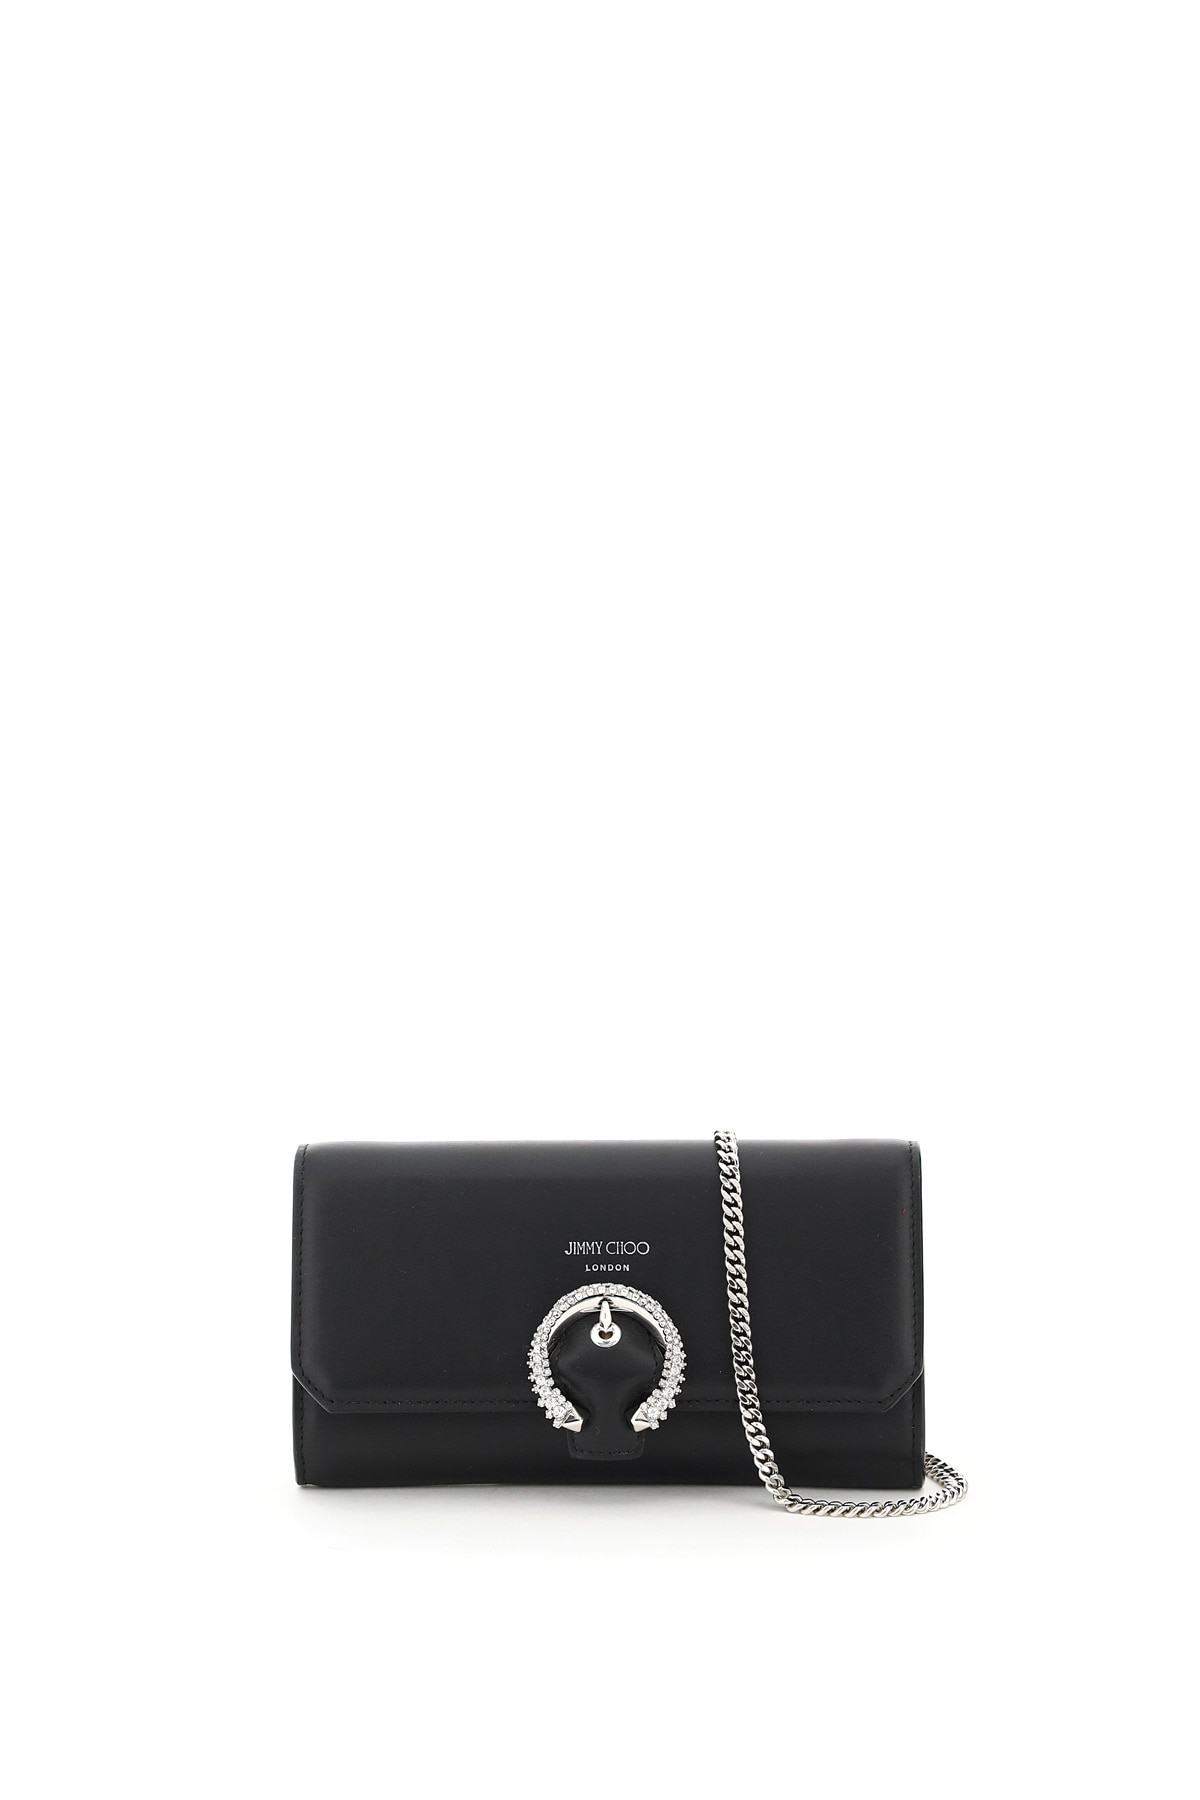 JIMMY CHOO WALLET WITH CHAIN OS Black Leather